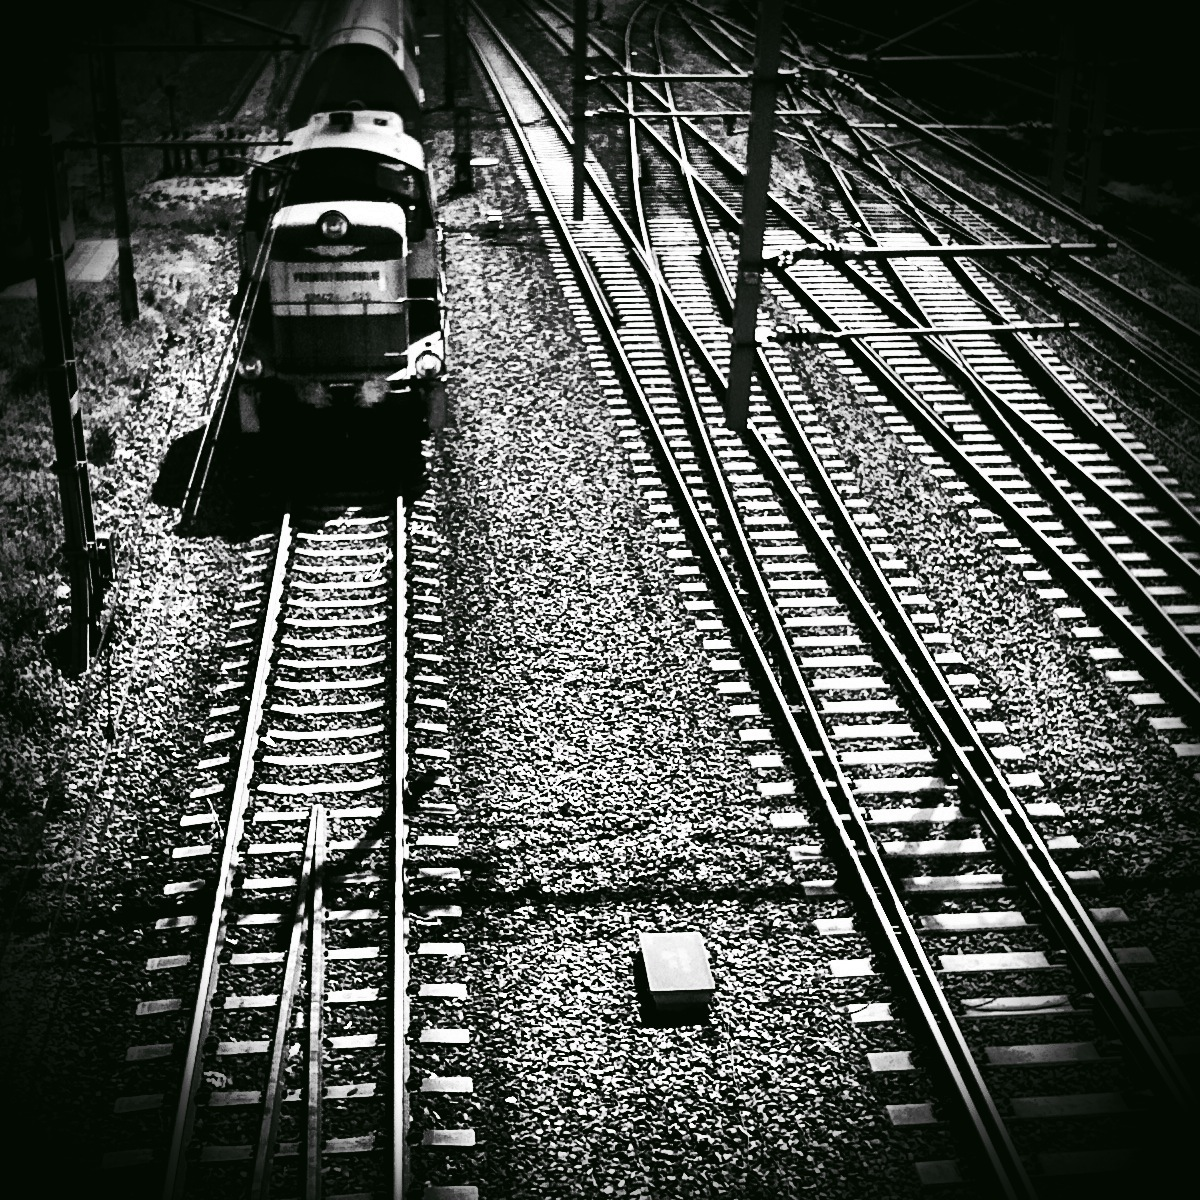 galeria365 :      Day 44/365 - Rails.    An old train going north.    I used  Camera+  (Clarity, square crop),  PictureShow  (Noir, vignetting).   Listening to   Stone Temple Pilots - Plush   (unplugged).